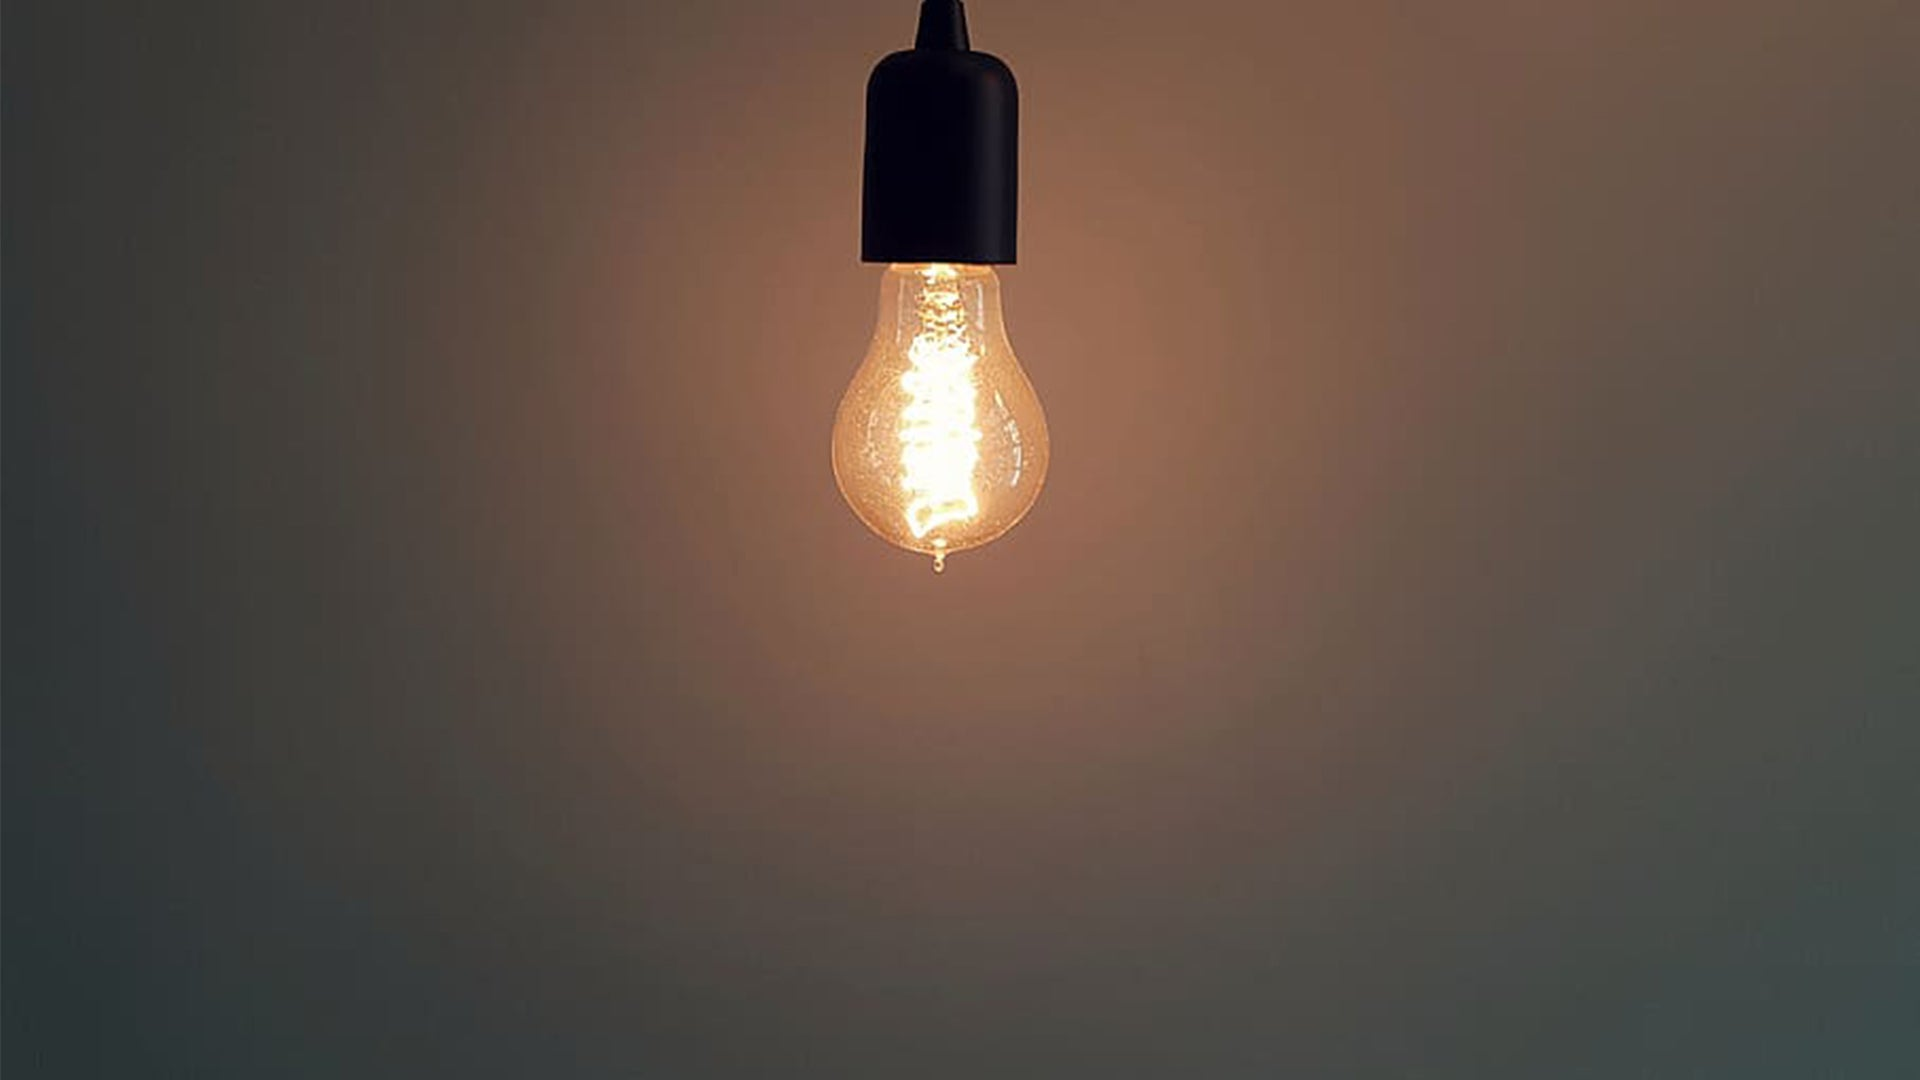 A picture of a glowing bulb suspended by a cord above the edge of the photograph